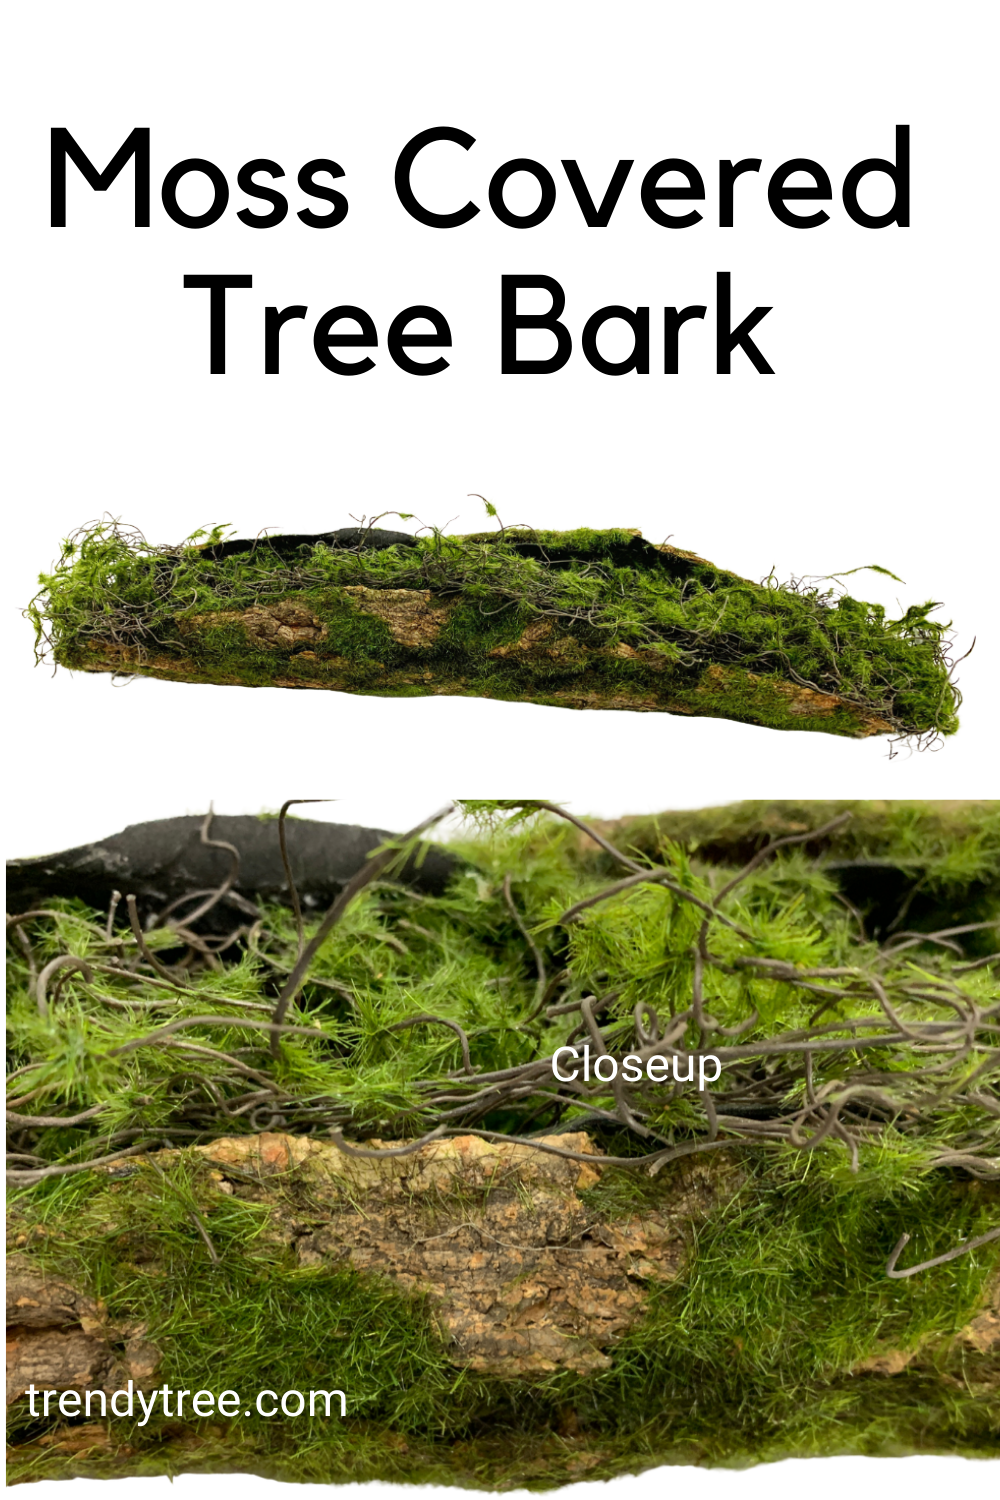 Moss Covered Tree Bark Use as a base for floral arrangements with succulents